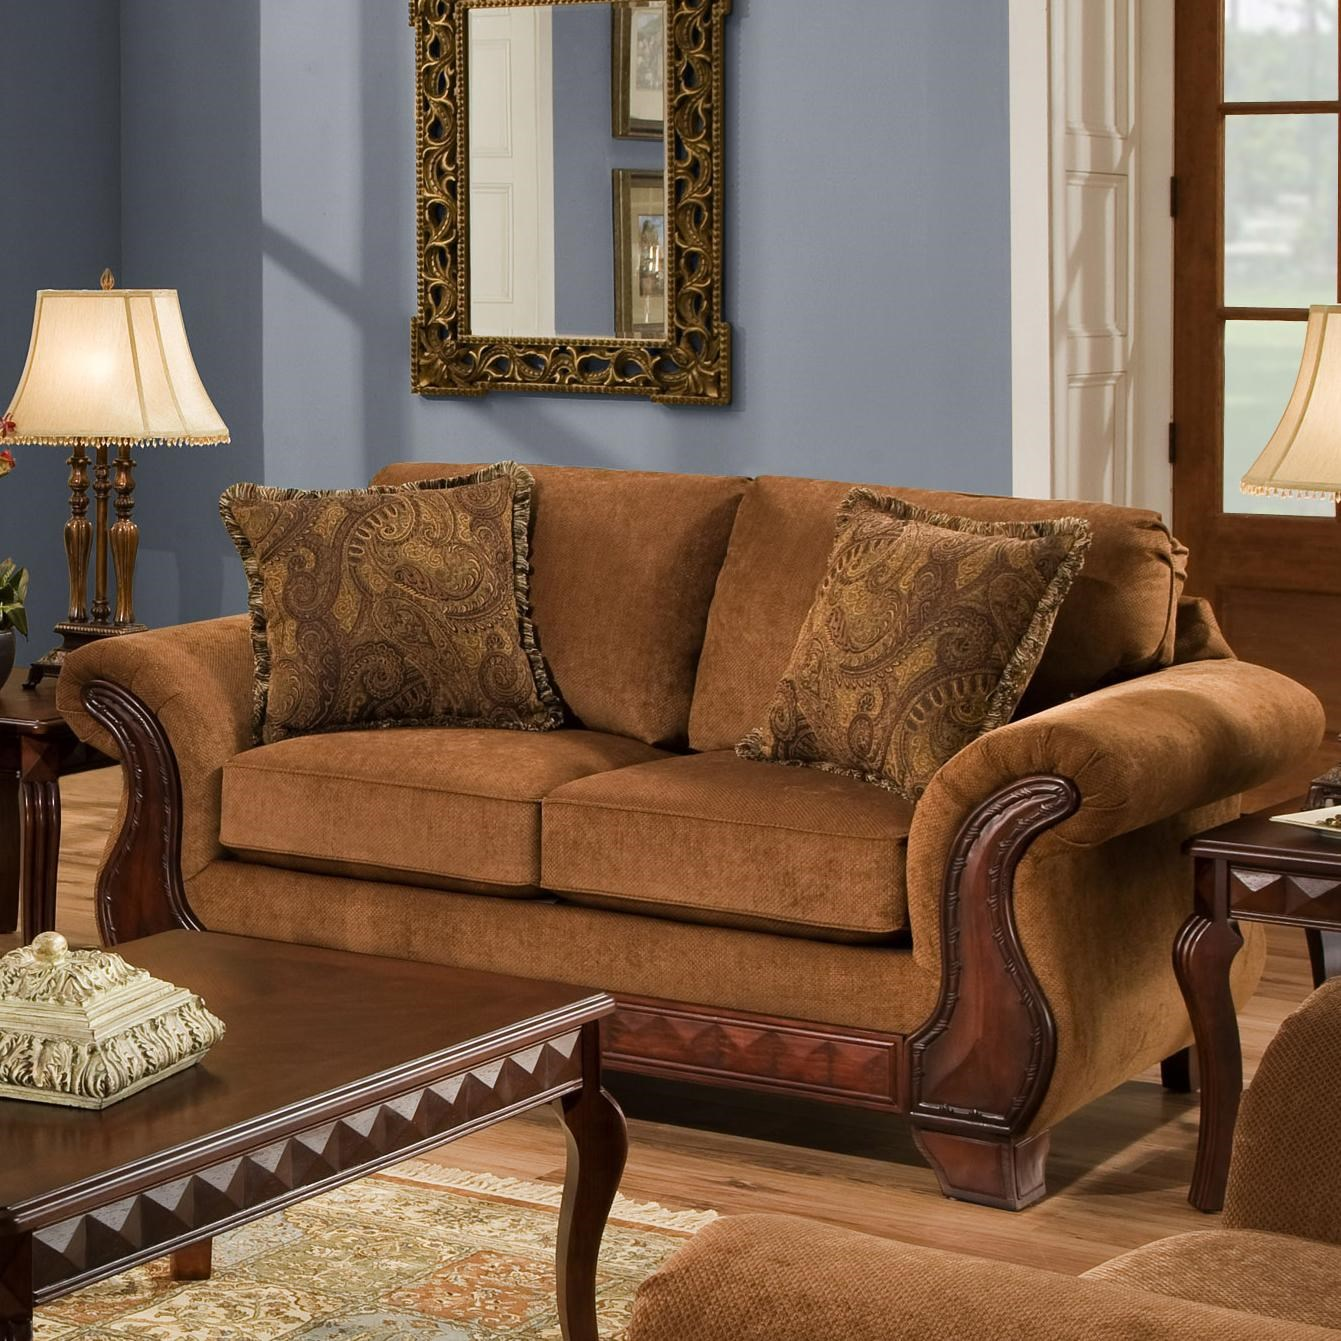 American Furniture 6900 Upholstered Loveseat With Exposed Wood Frame